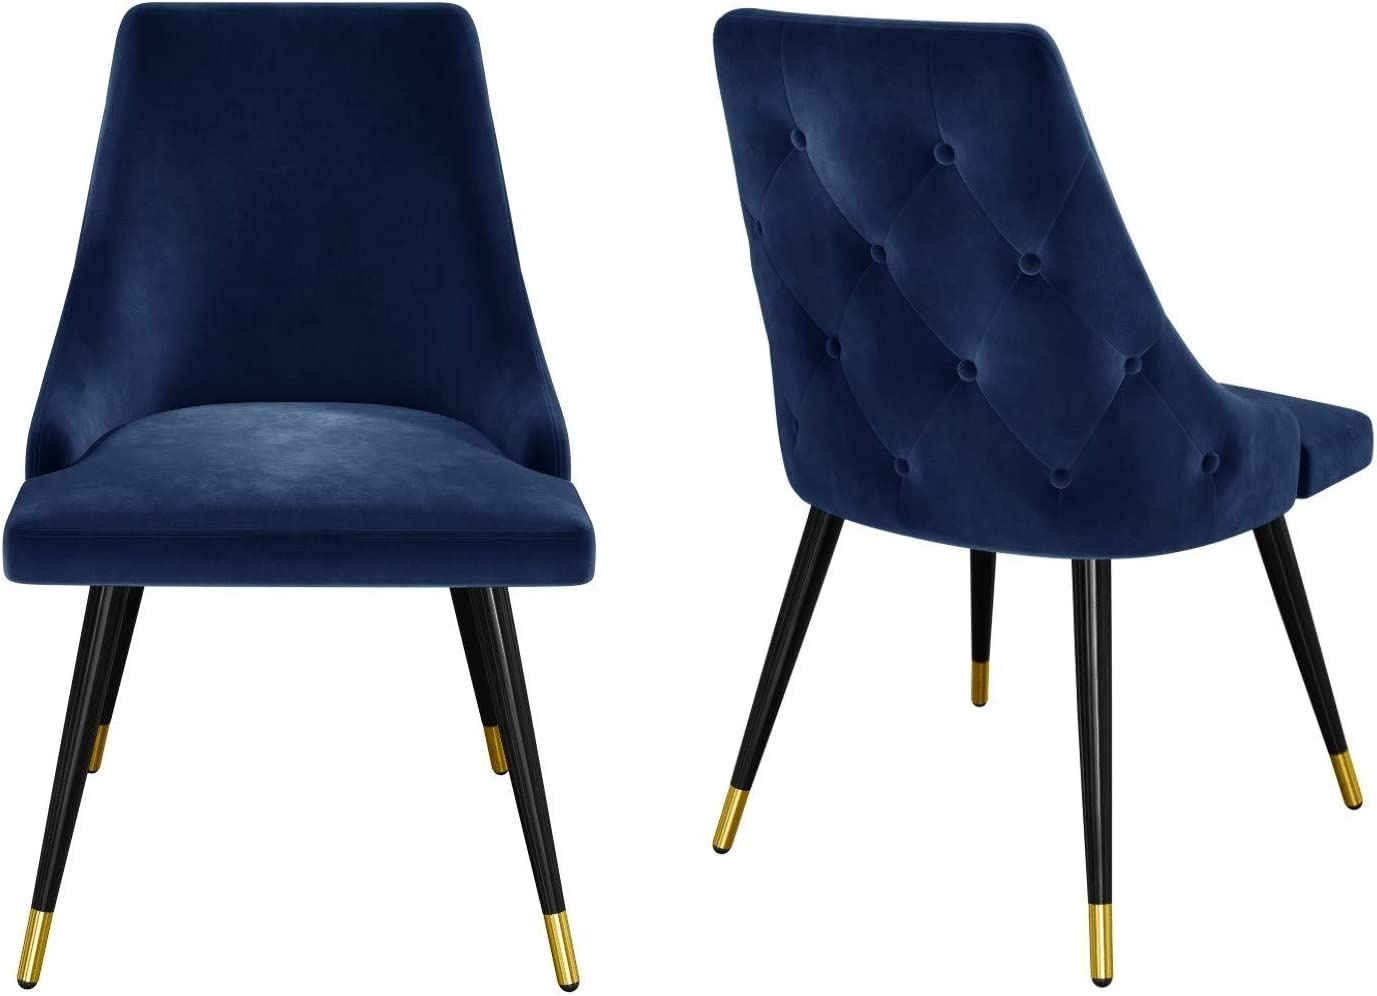 Maddy Navy Blue Velvet Dining Chairs With Button Back Black Legs Amazon Co Uk Kitchen Home